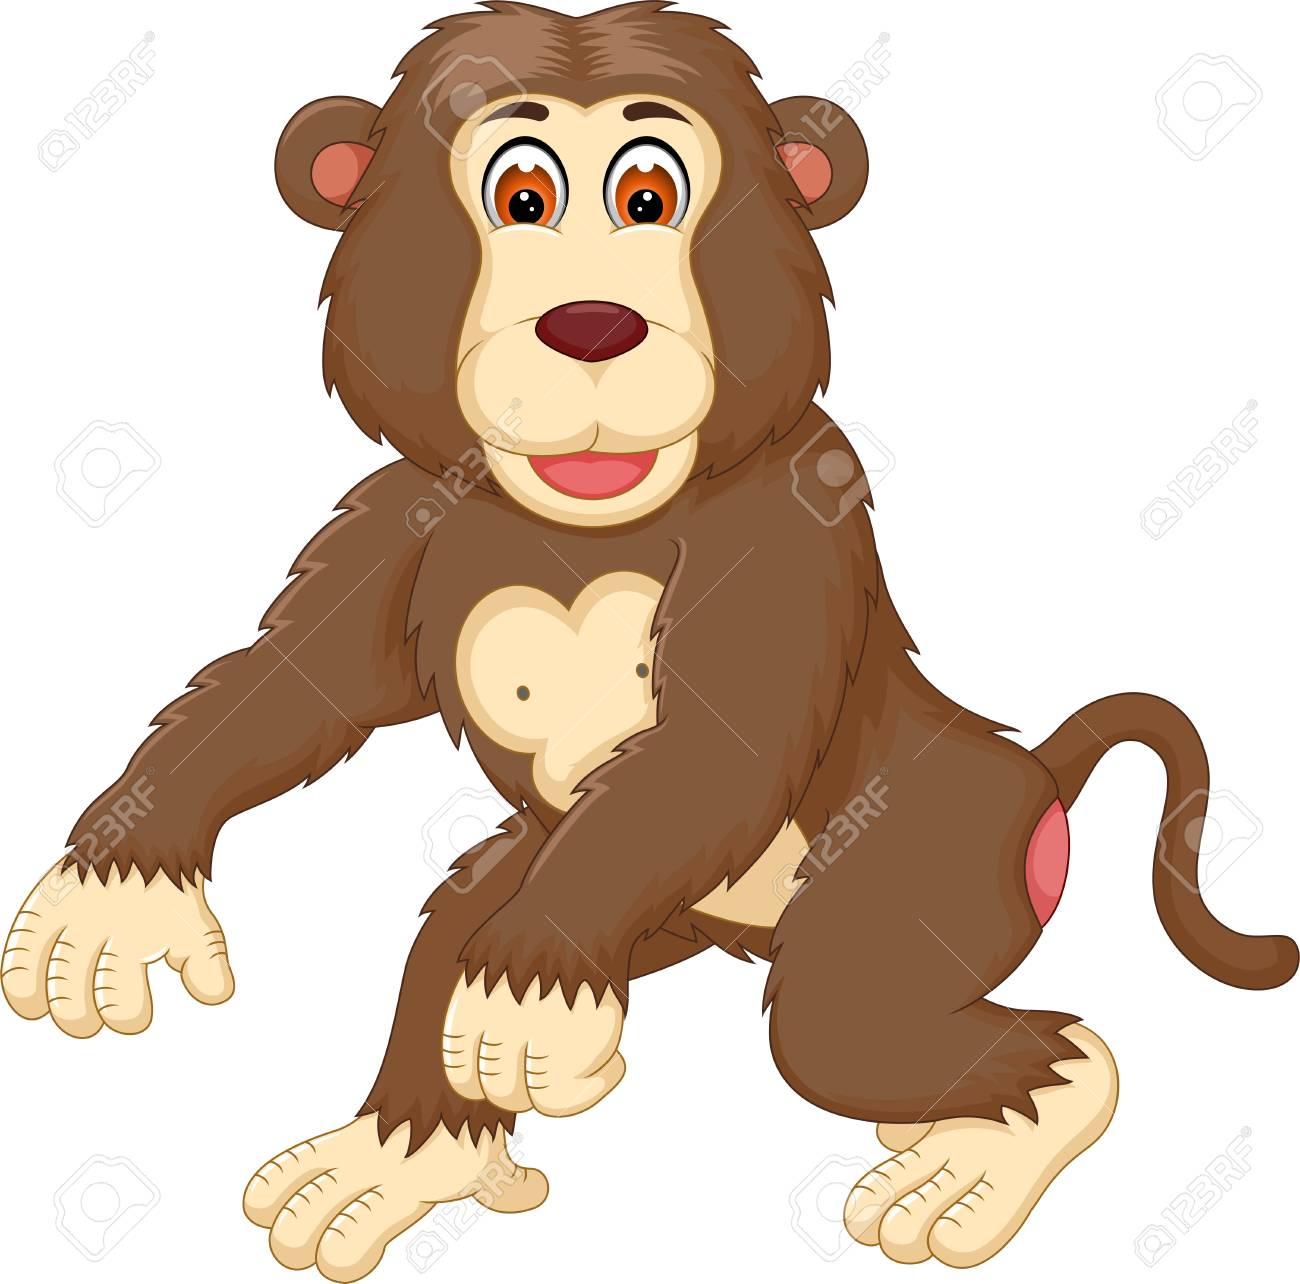 1300x1284 Cute Gorilla Cartoon Walking With Smile Royalty Free Cliparts